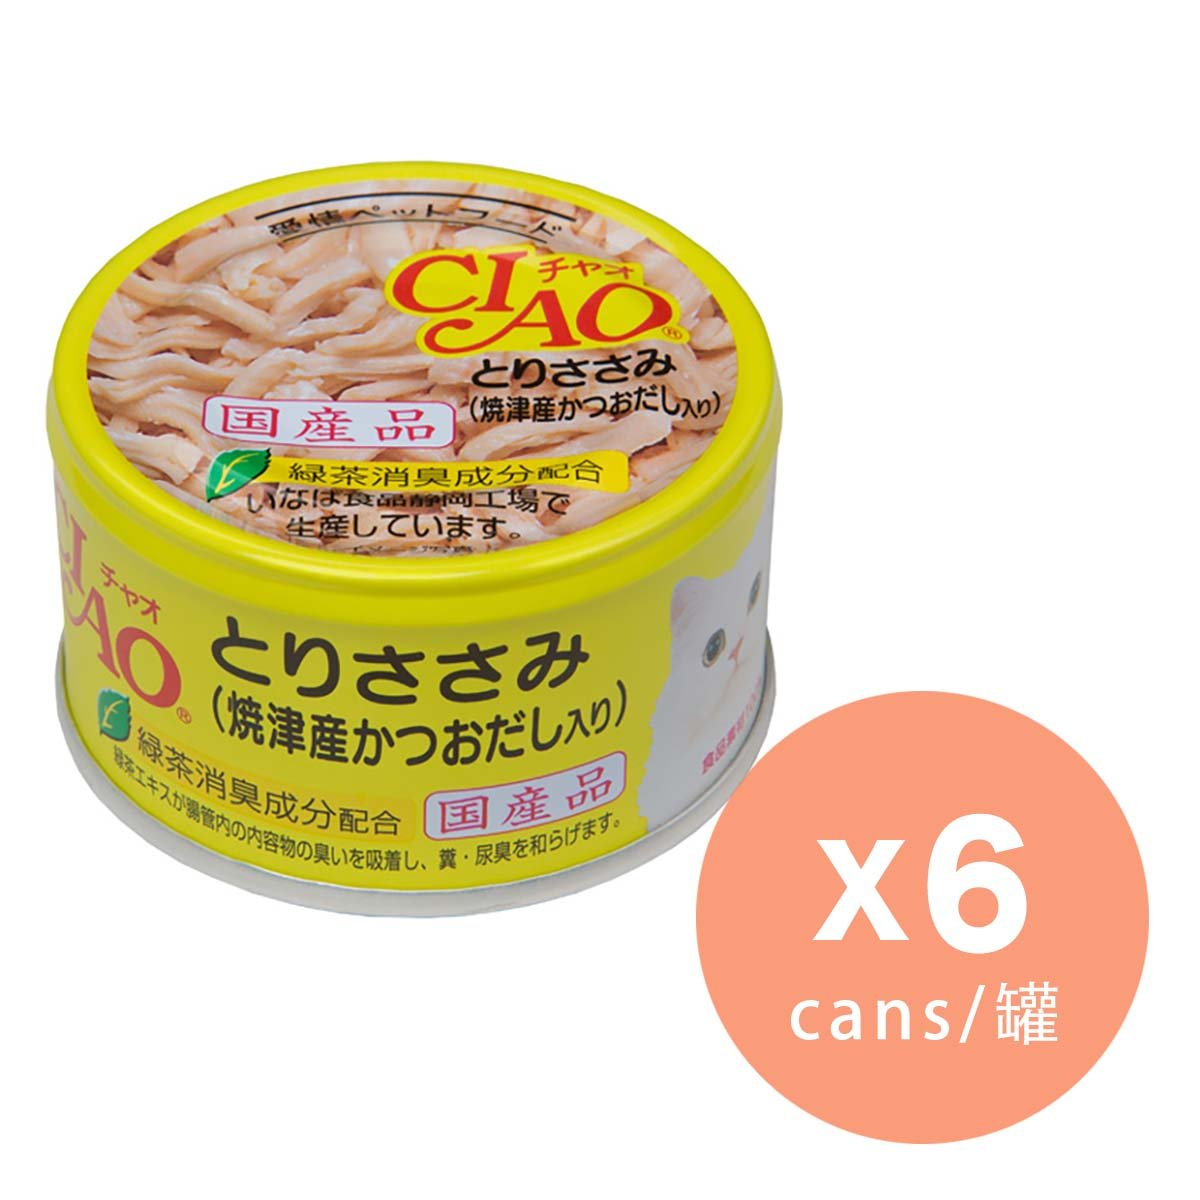 CIAO WHITE - Chicken with Skipjack Tuna Soup C-60 x6